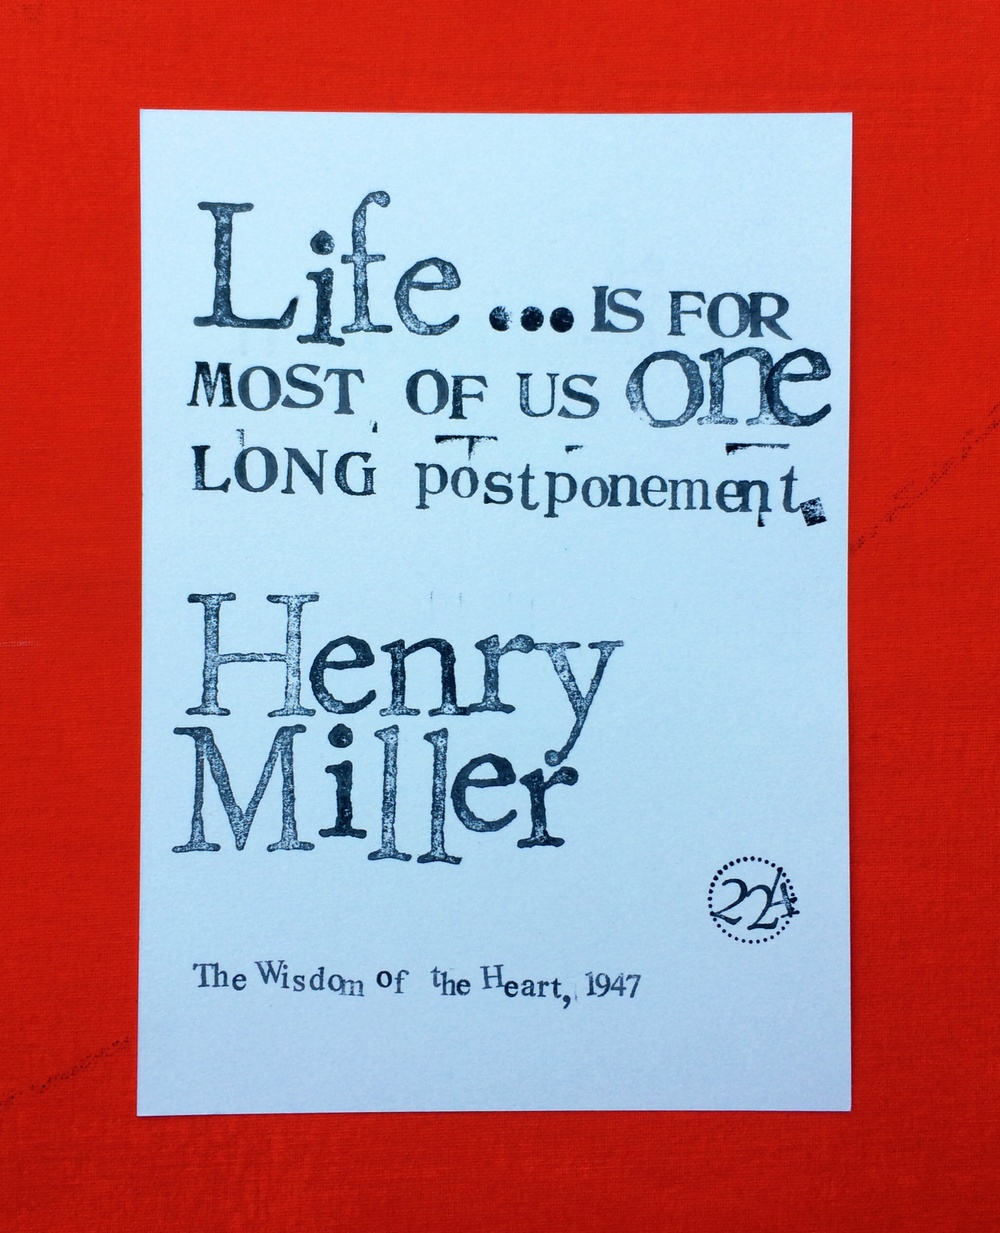 """Life is for most of us, one long postponement."" -Henry Miller"